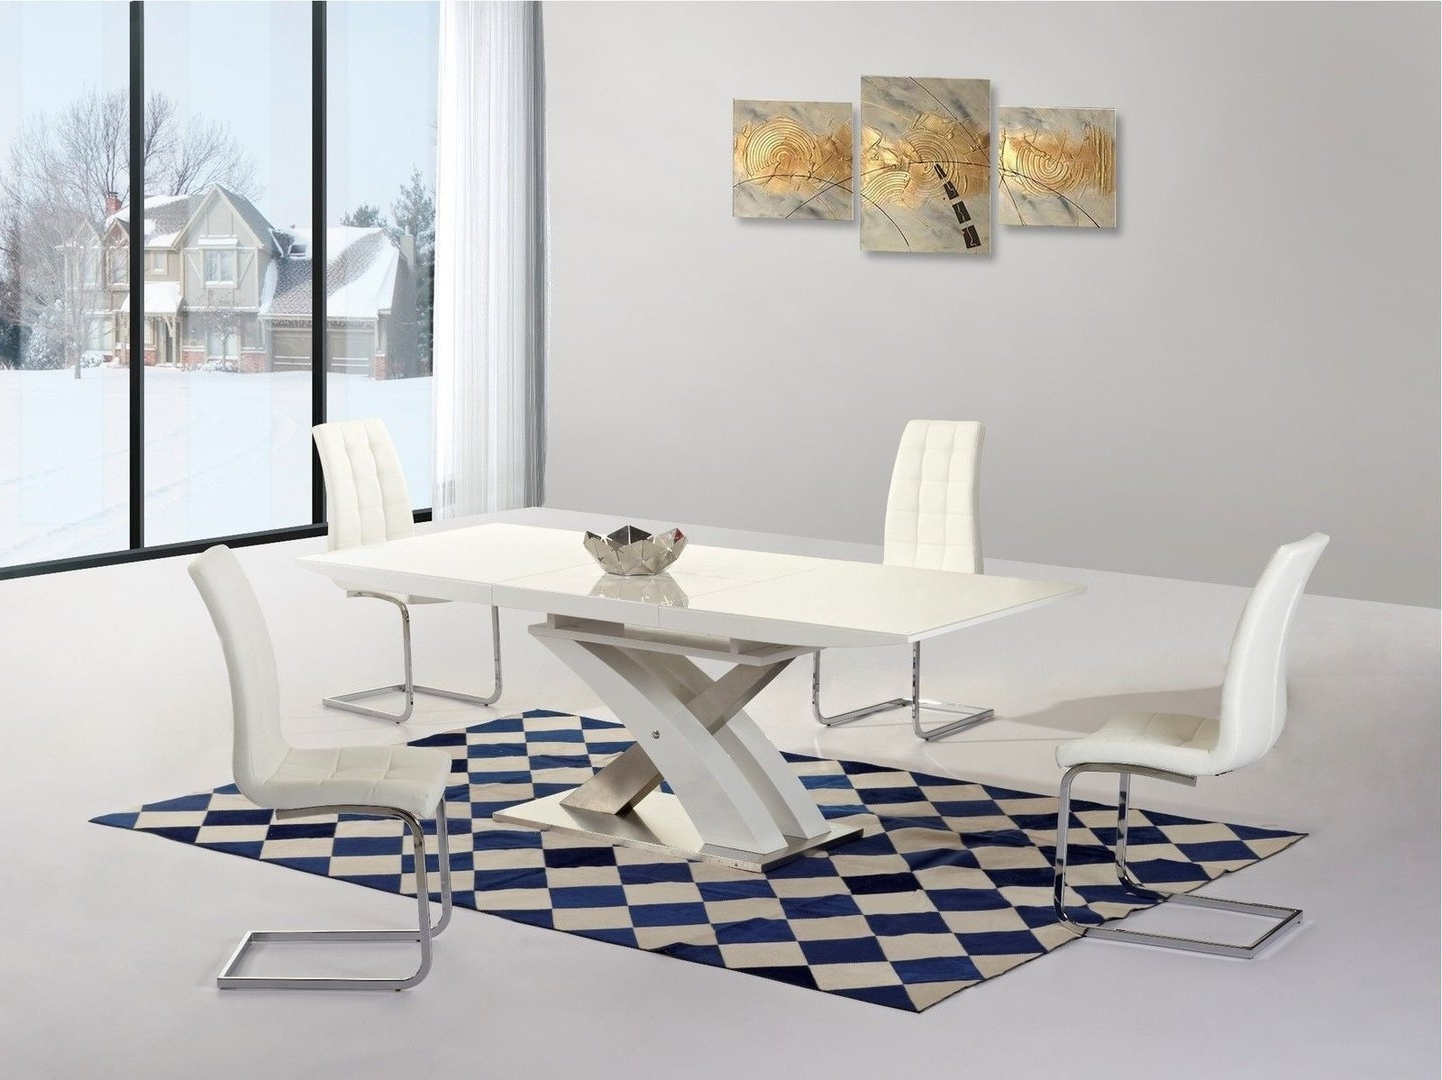 Best And Newest White High Gloss And Glass Extending Dining Table & 8 Chairs In Extending Dining Tables And 8 Chairs (View 15 of 25)